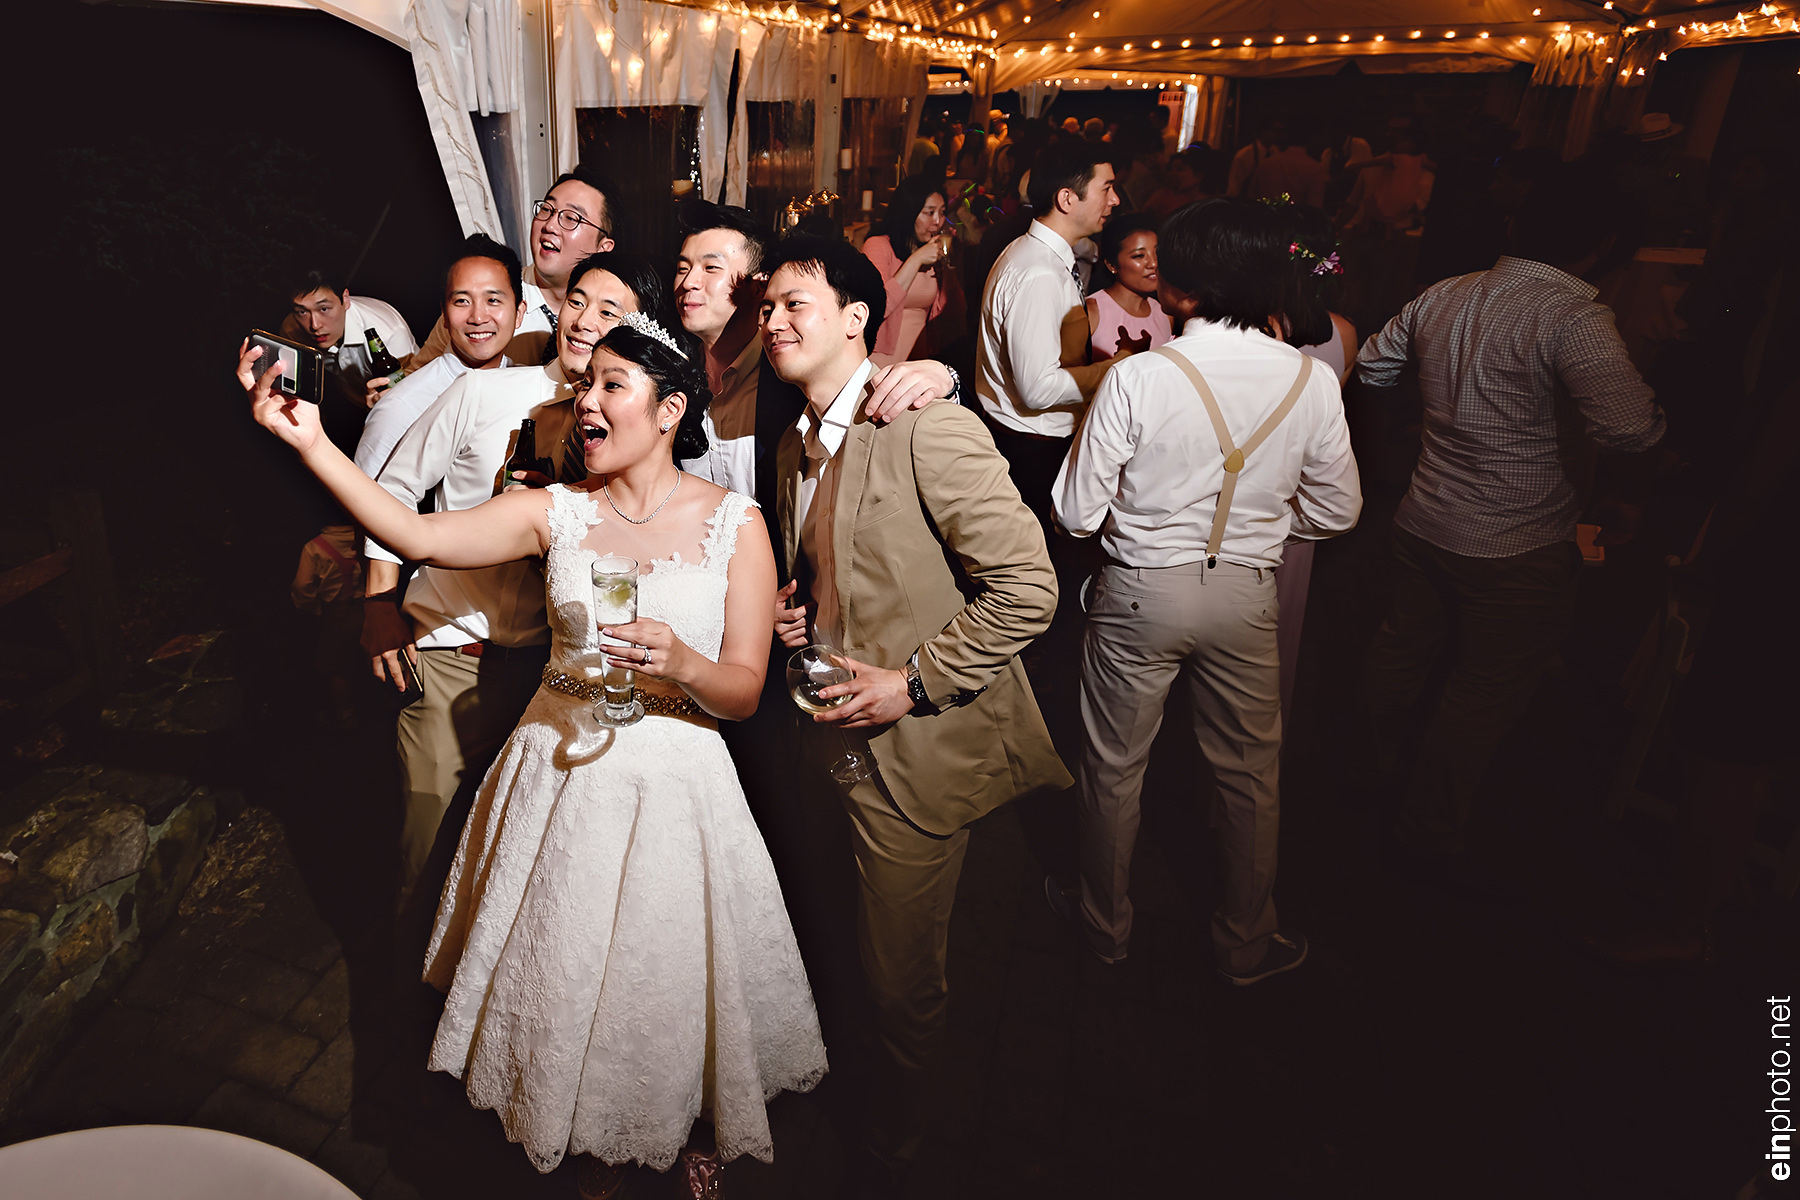 Bride taking a selfie with the groomsmen.